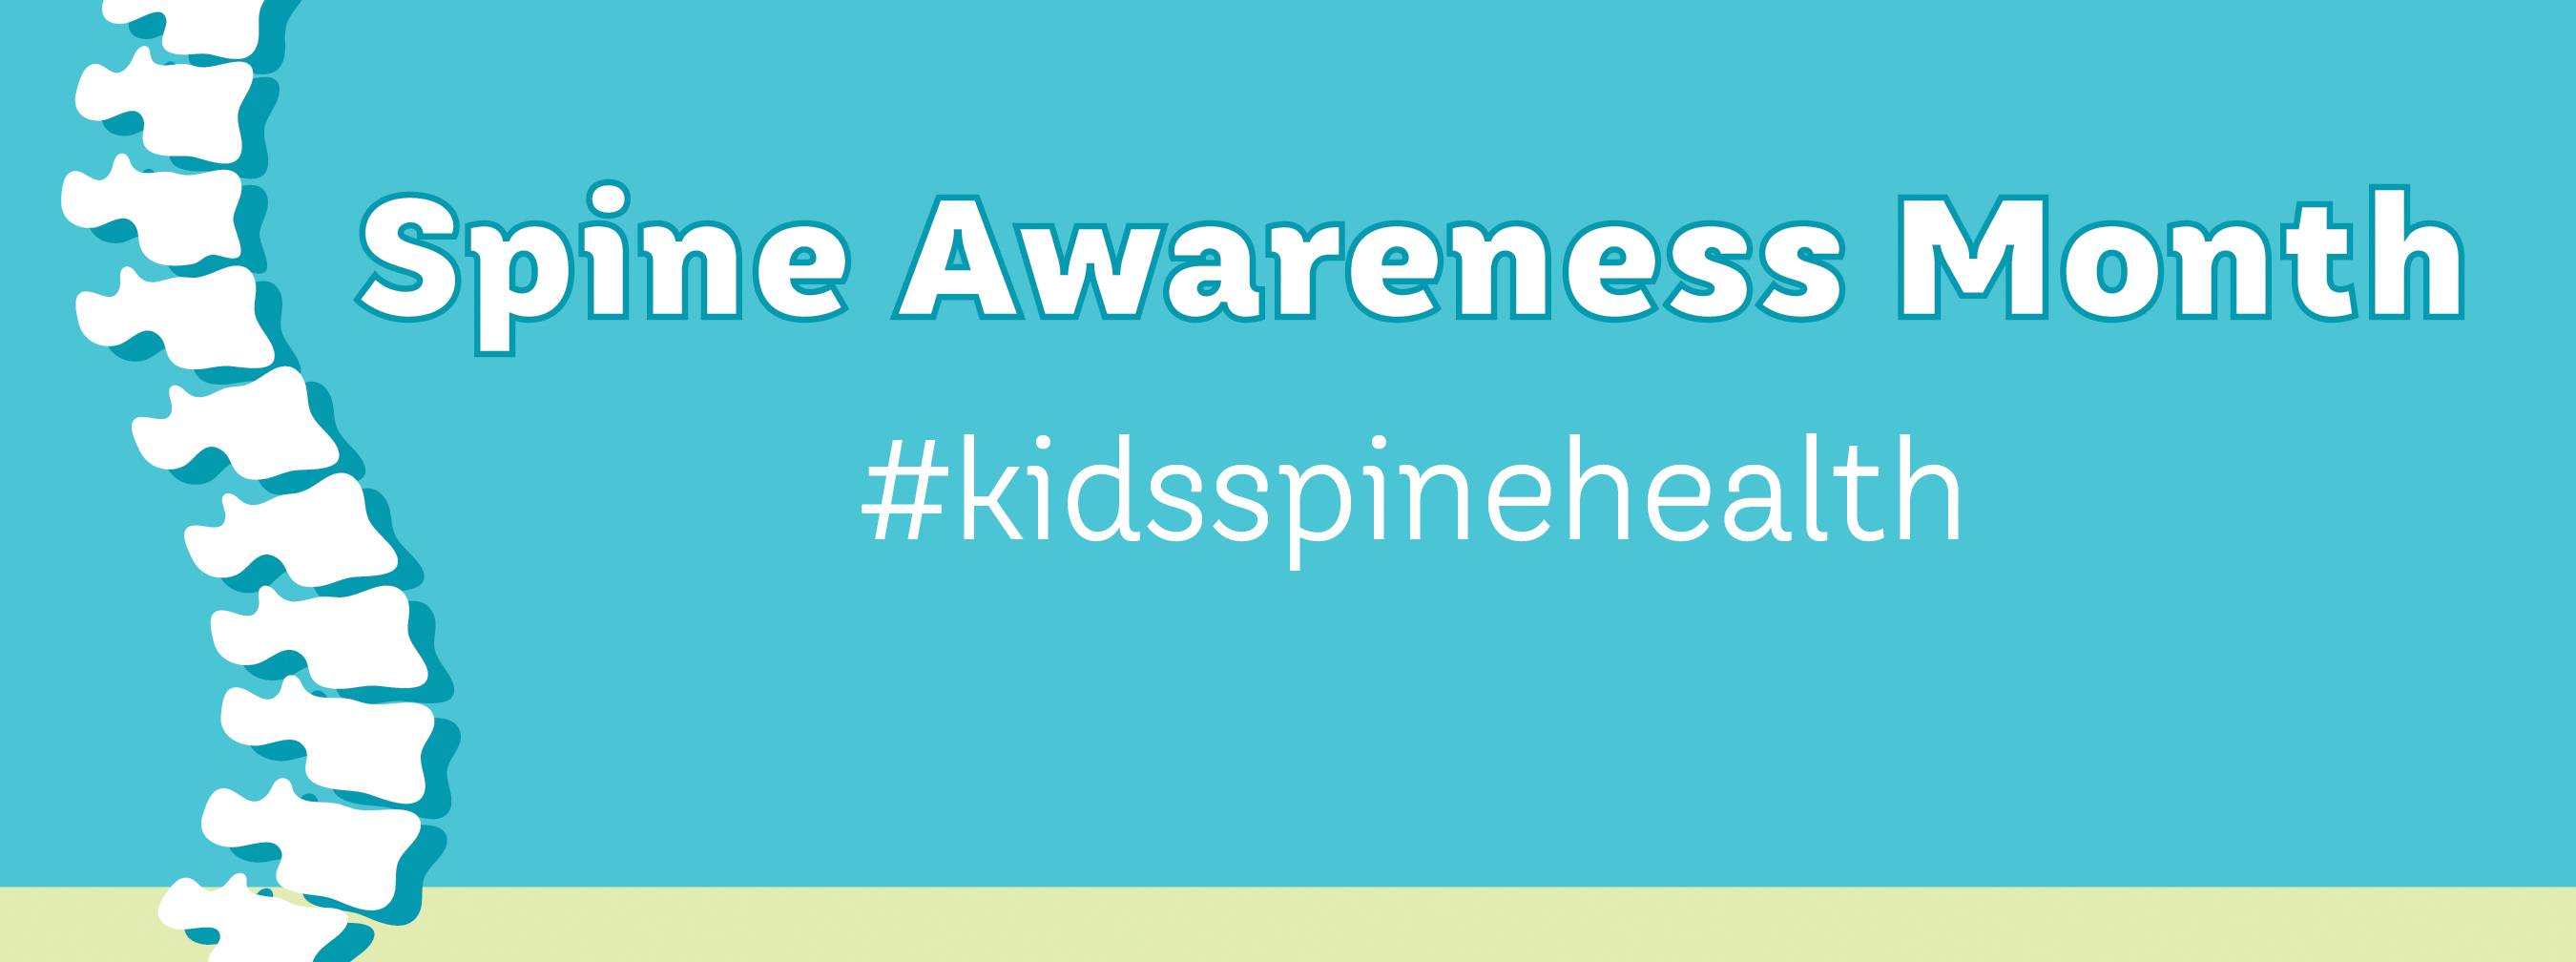 Spine Awareness Month #kidsspinehealth Gillette children's banner